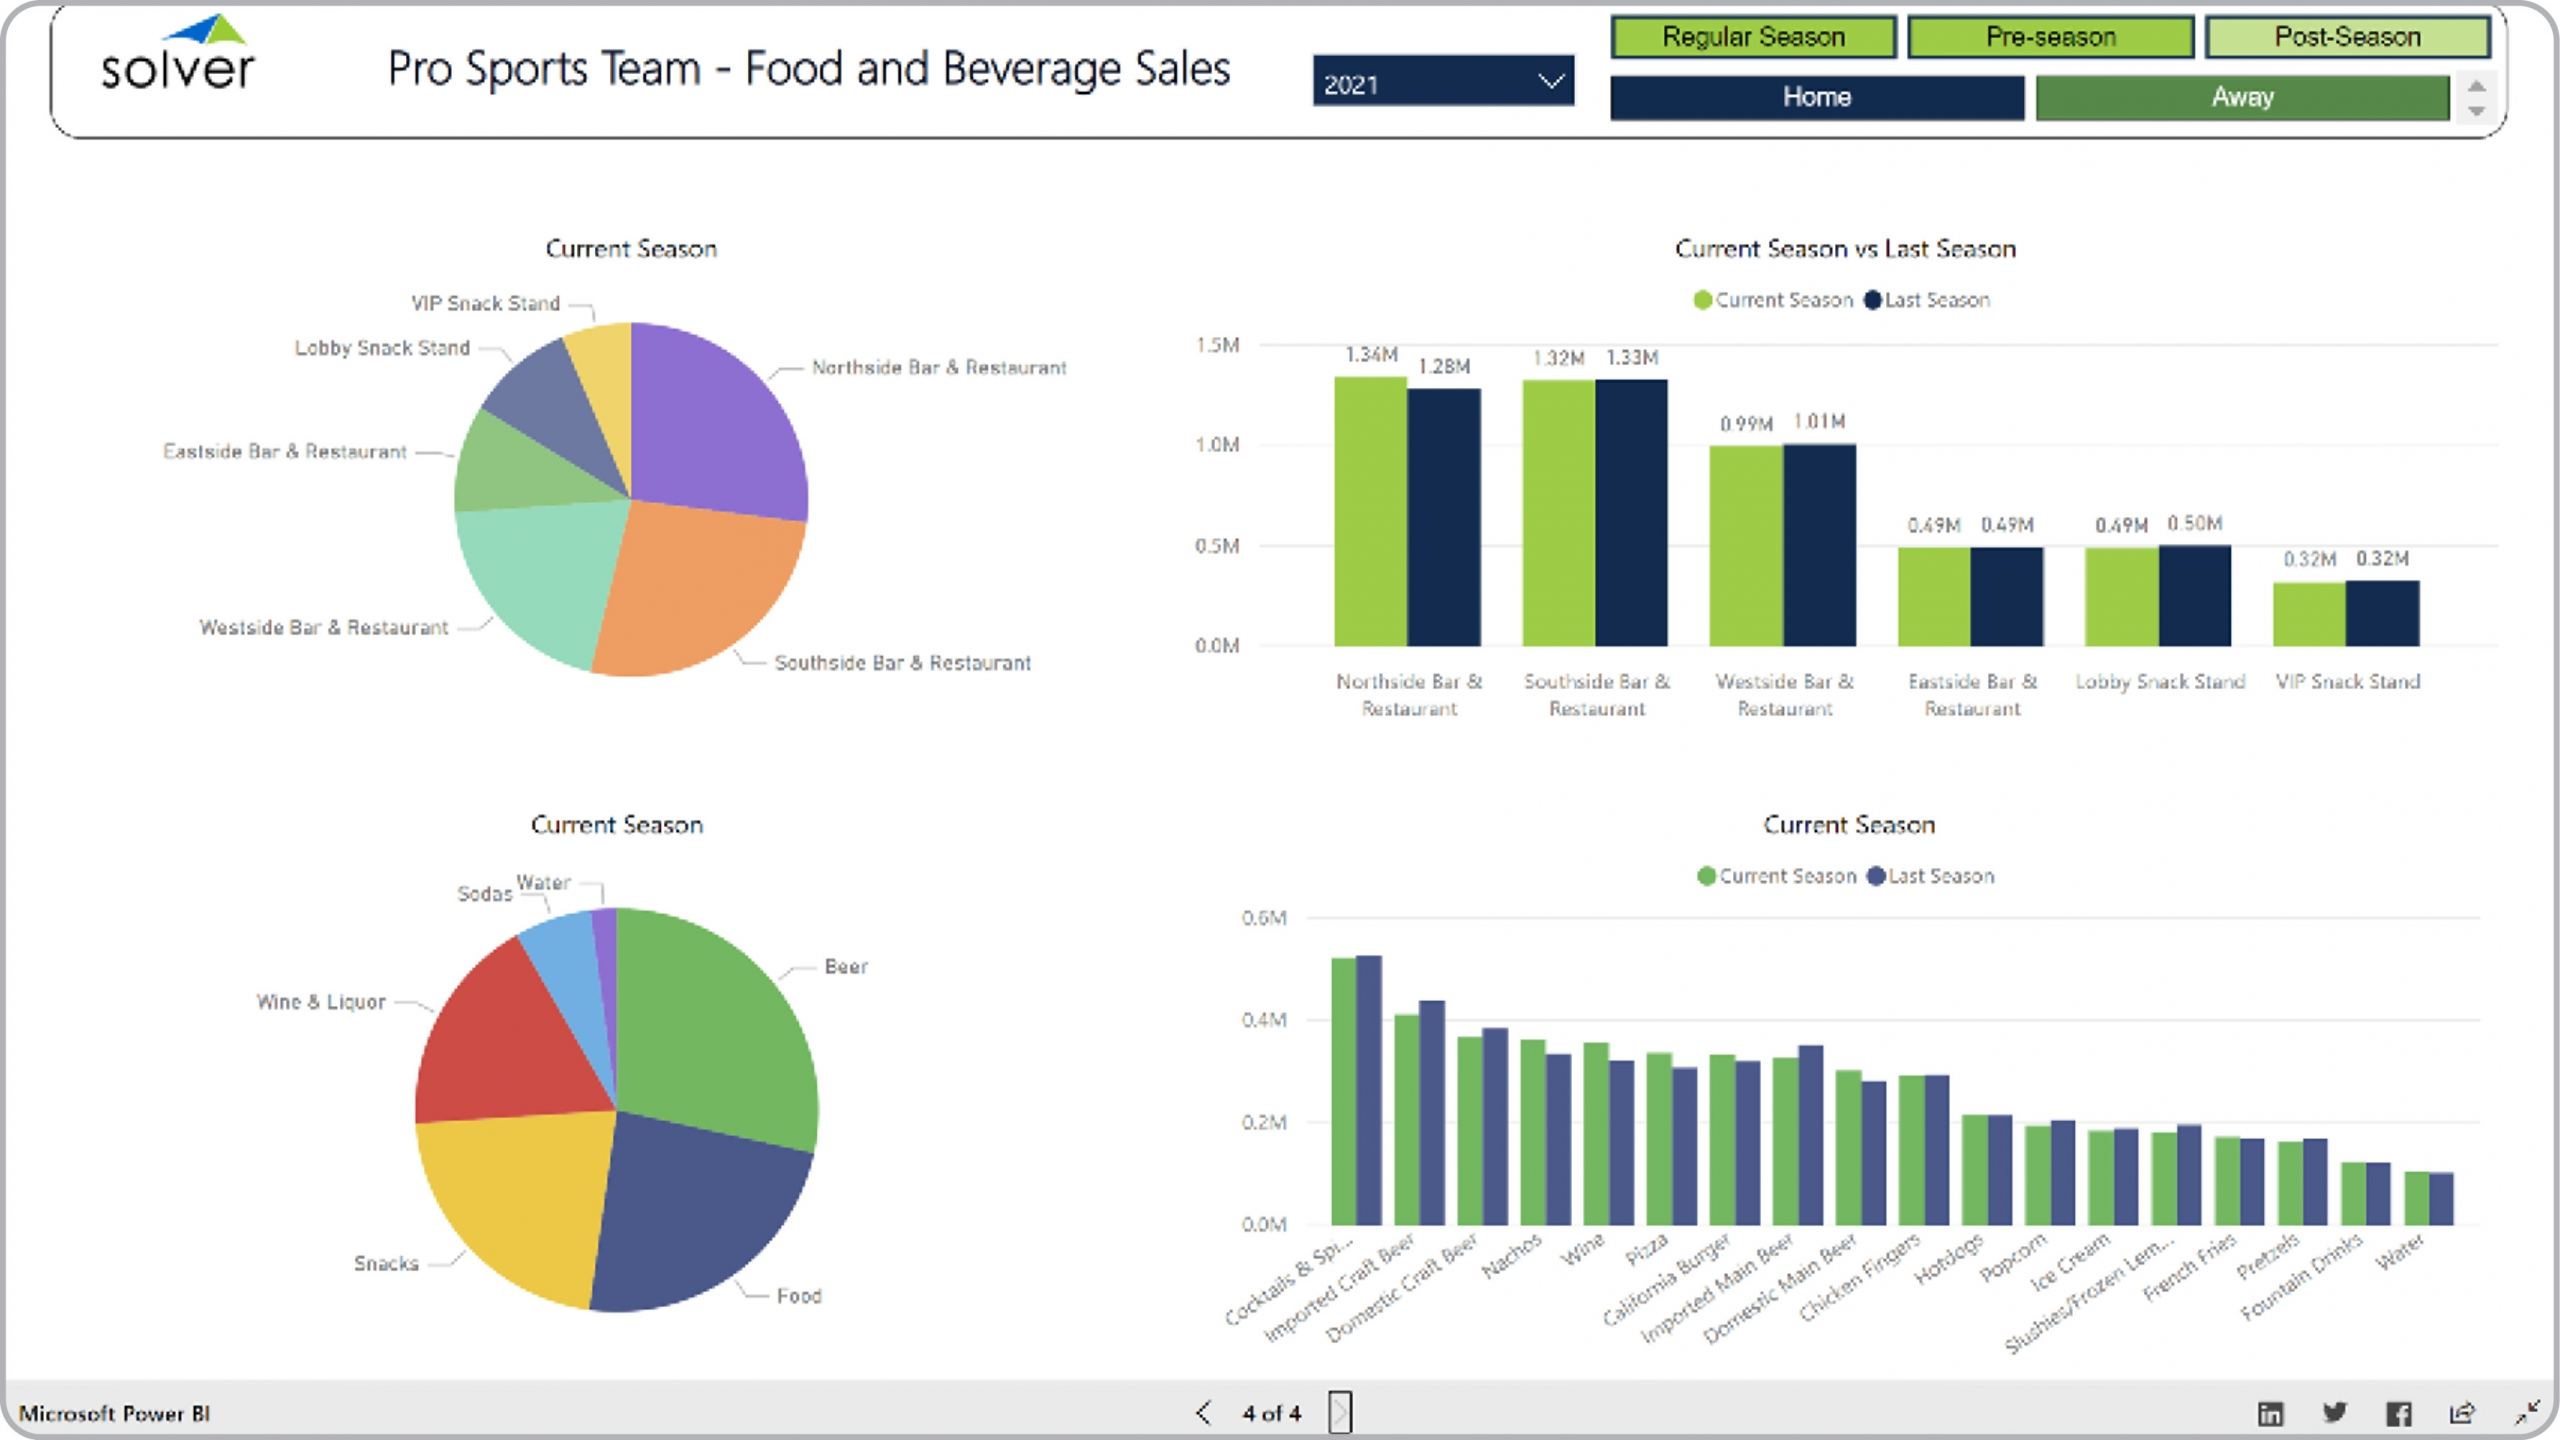 Sports – Food and Beverage Sales